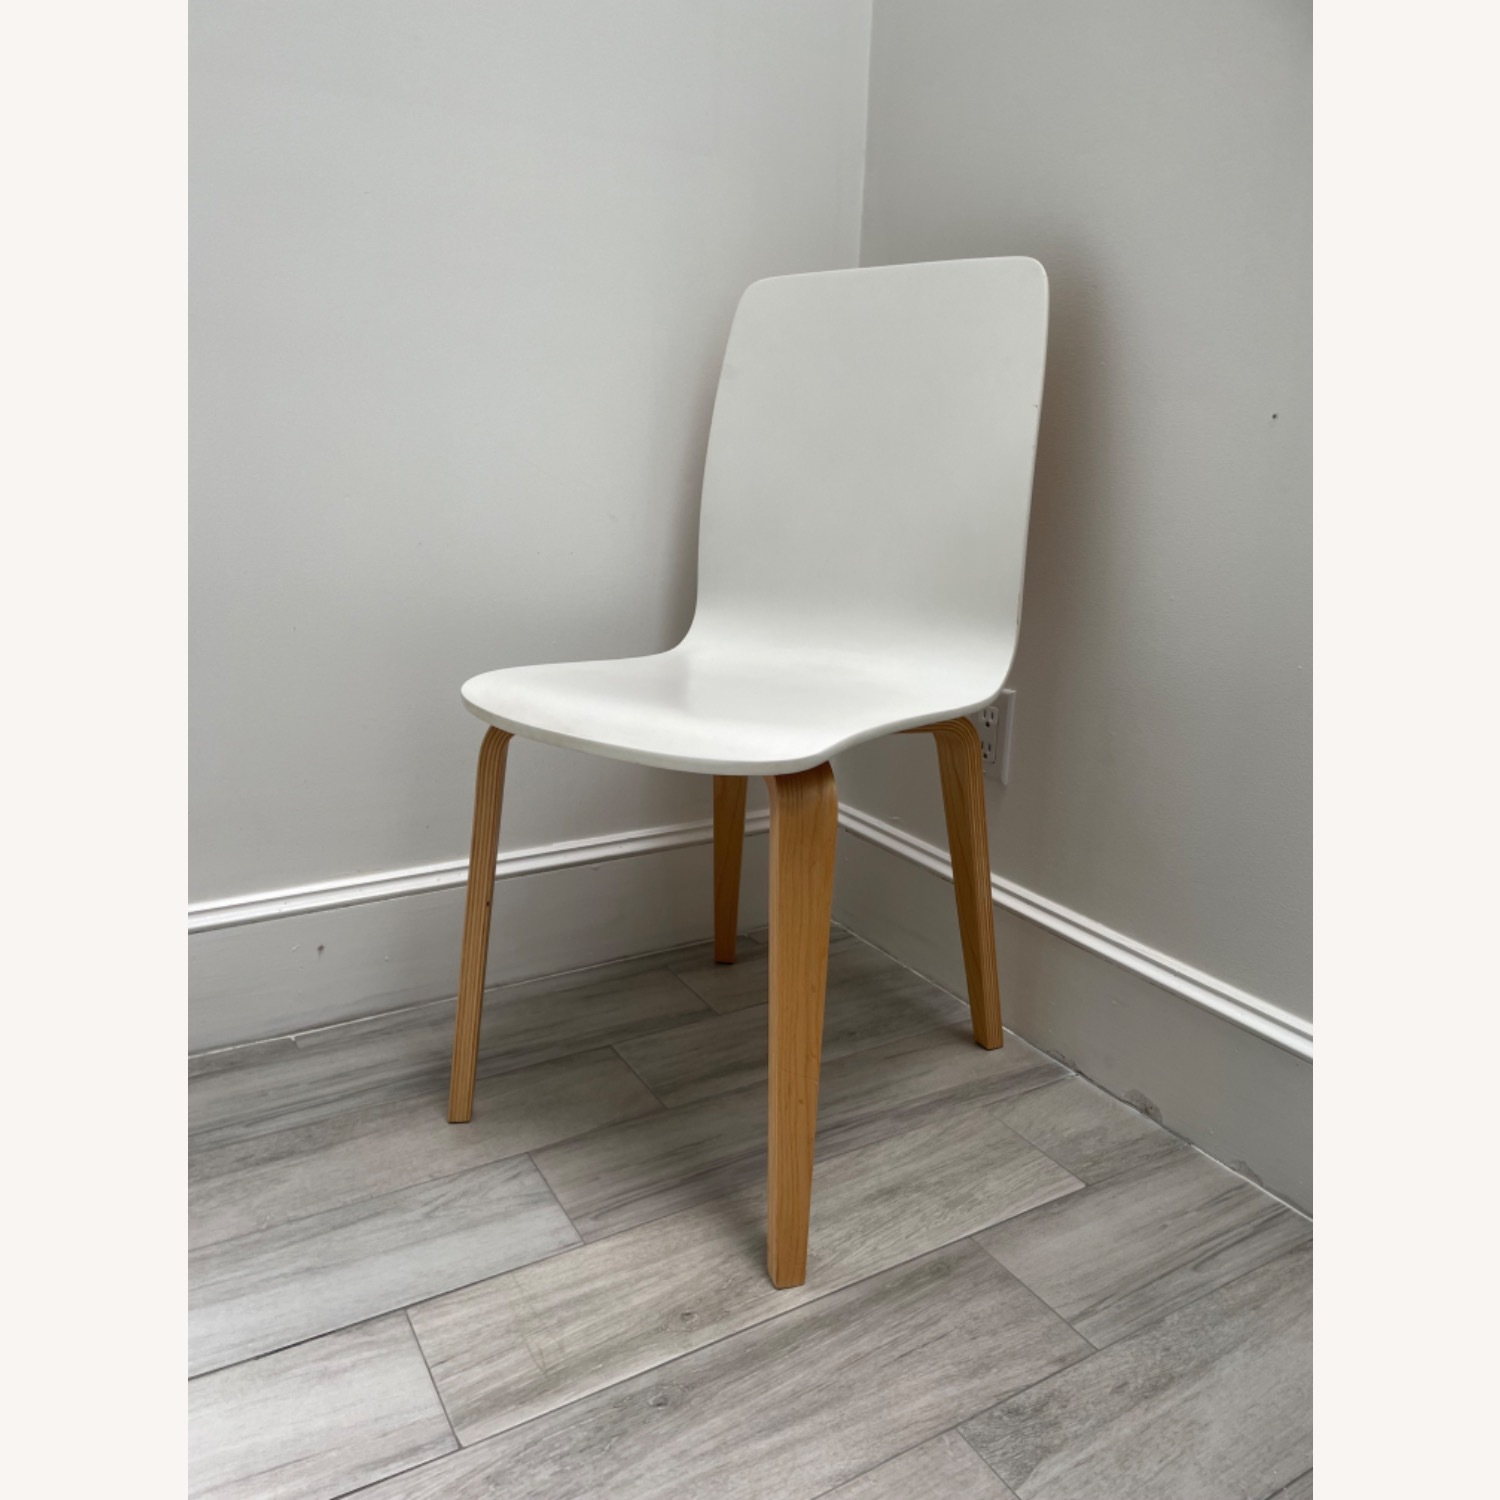 Anthropologie White Tamsin Dining Chairs (4) - image-3